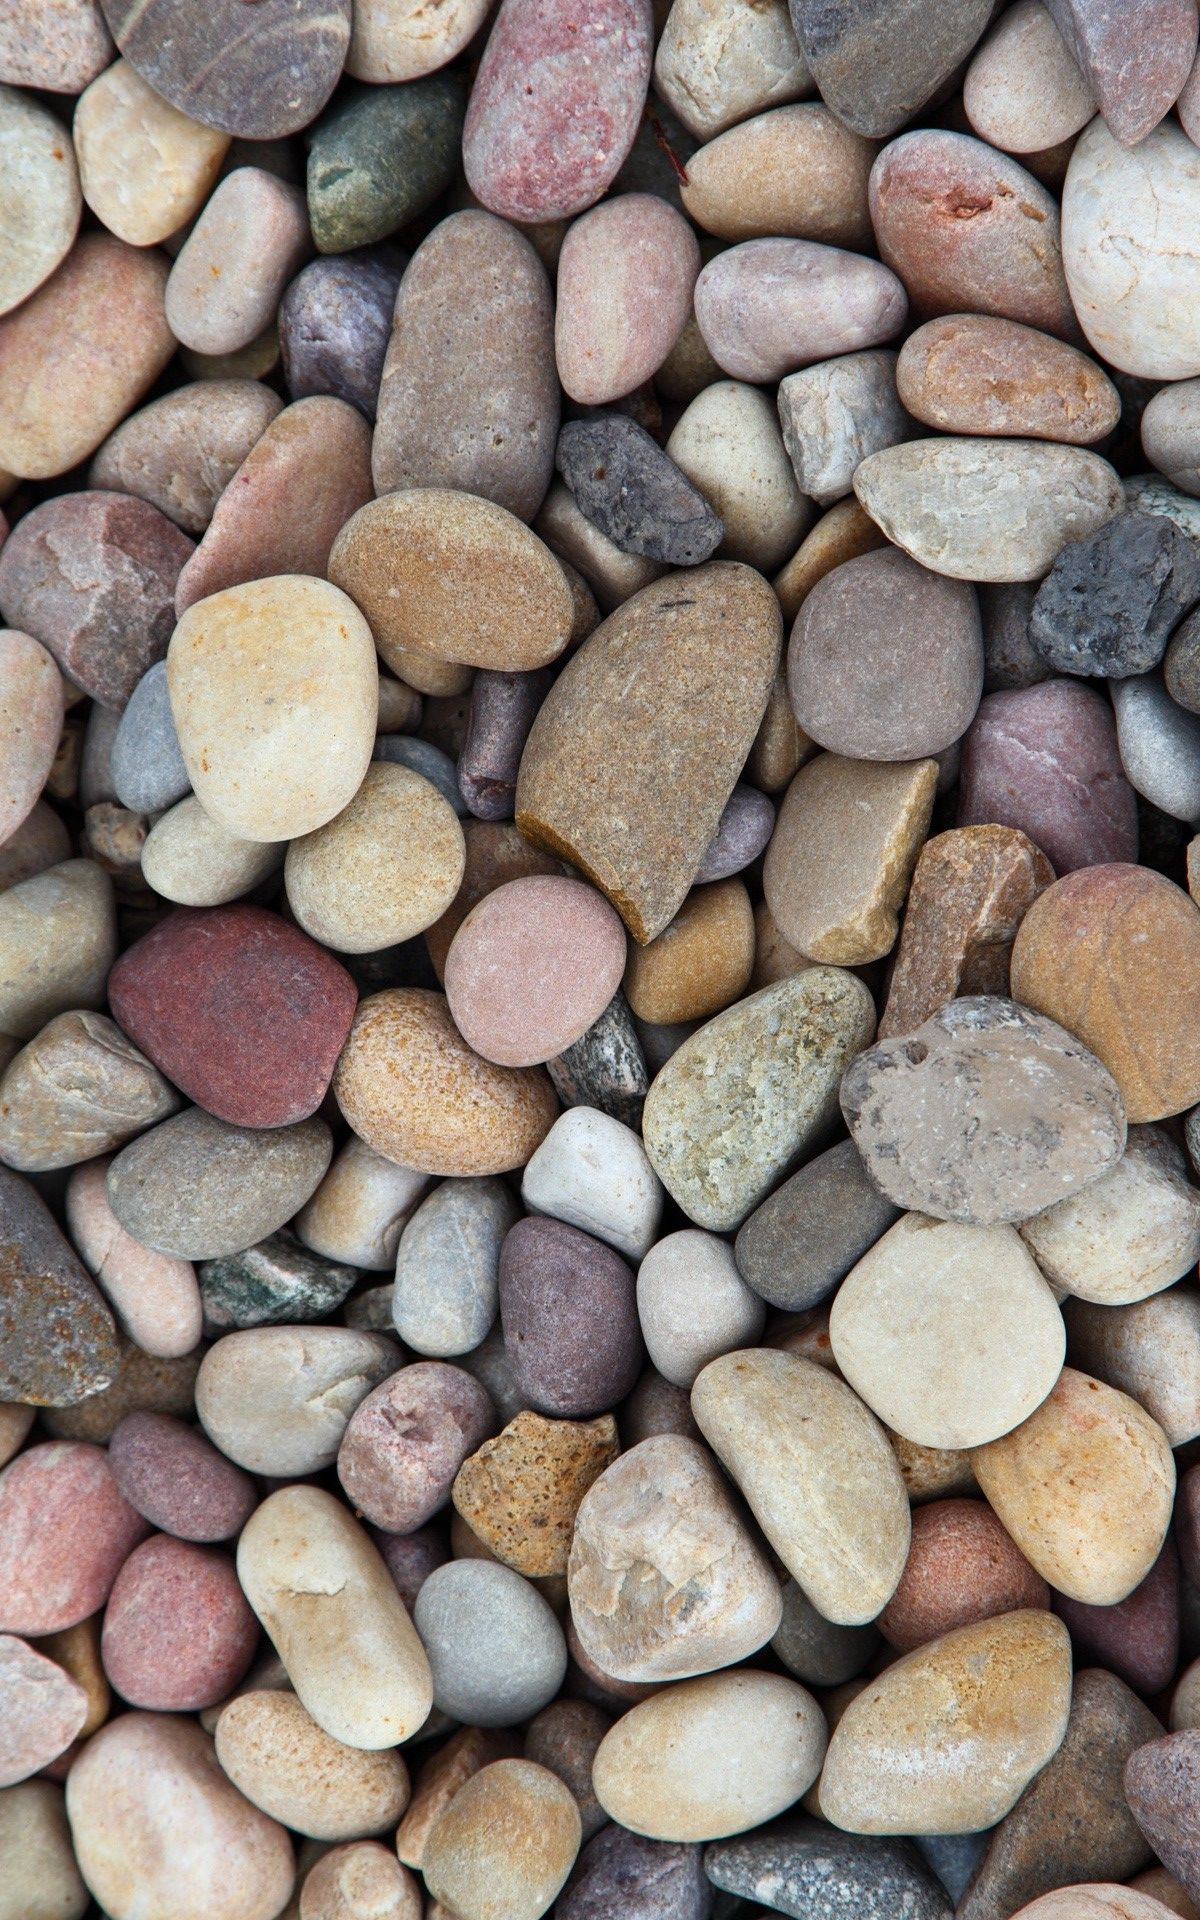 Rocks Stones Cobblestone Pebble Sands Wallpaper Hd